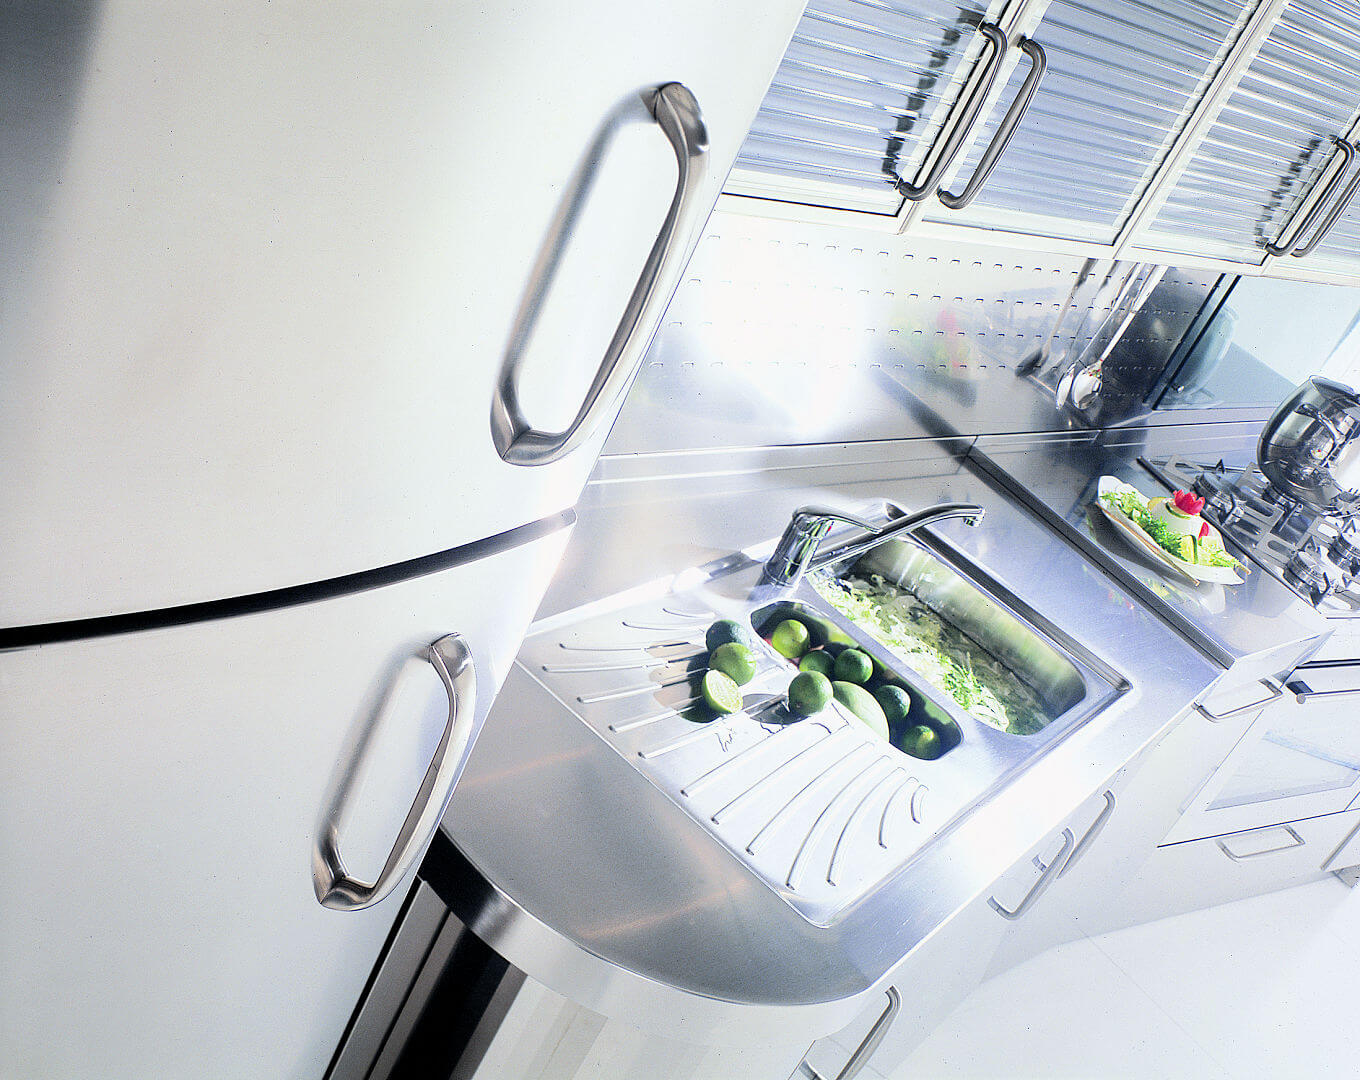 Arca Cucine Italy - Kitchen maid in Stainless Steel and Glass - Wagon - Sink